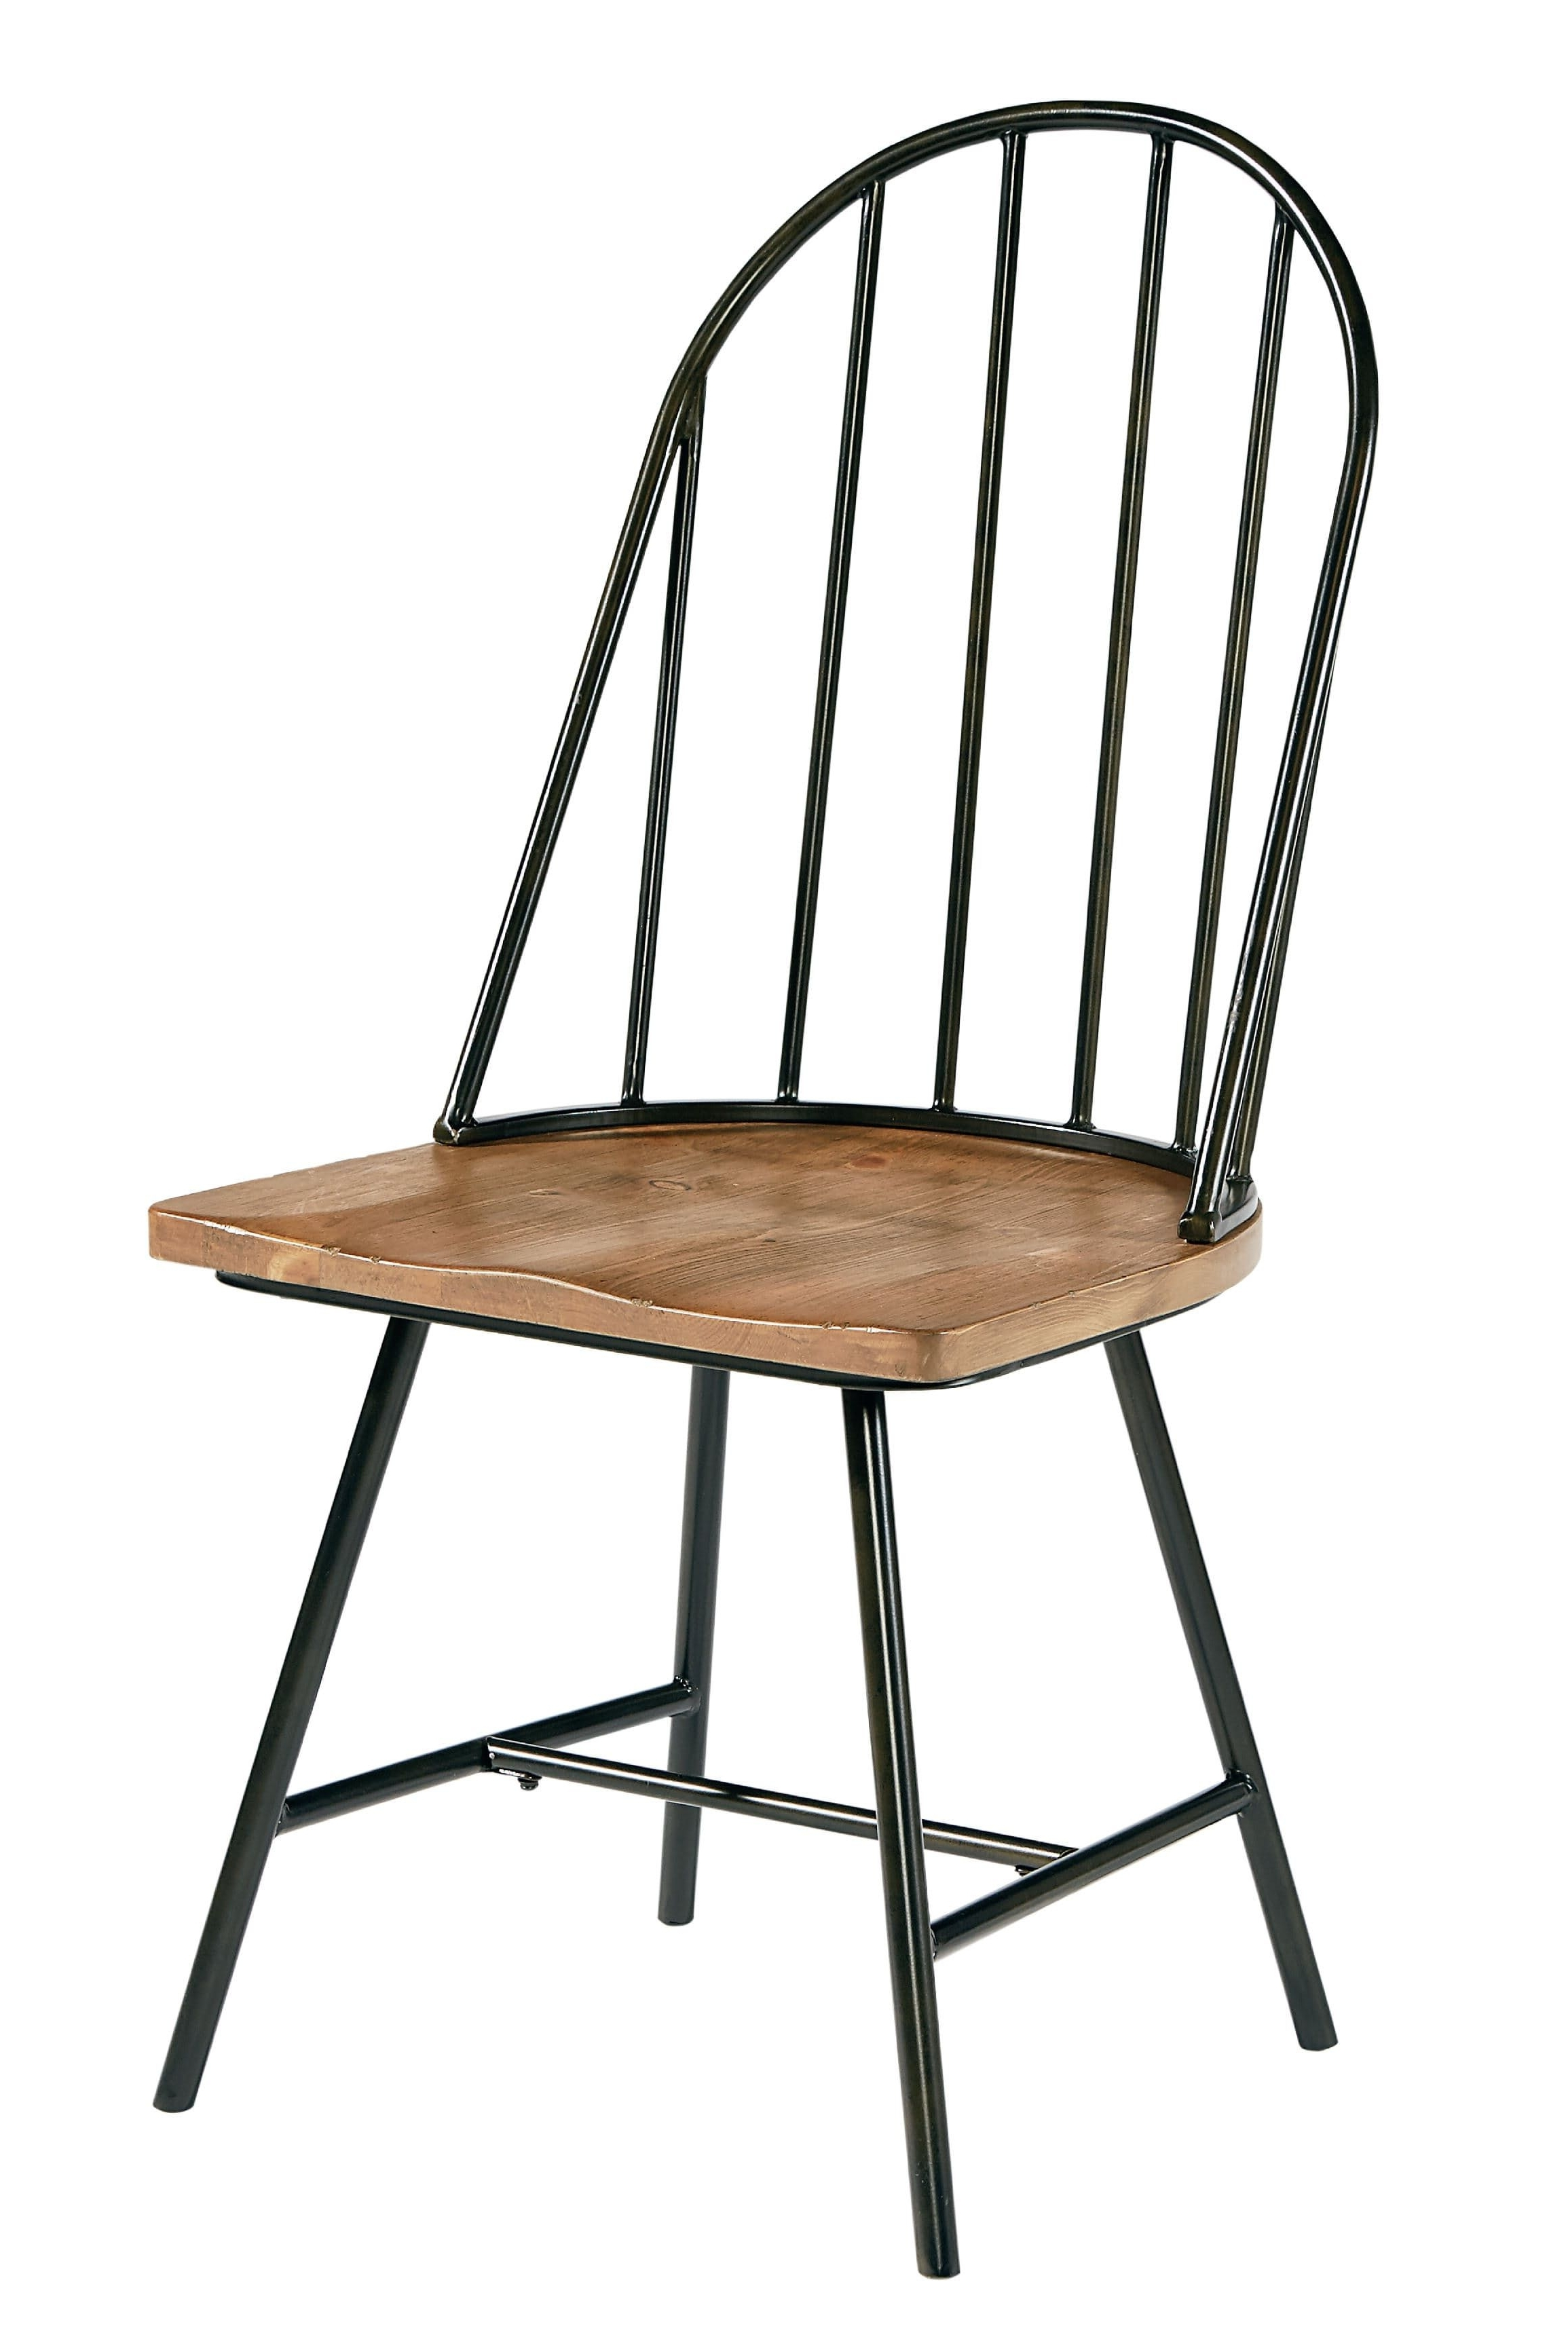 Famous Magnolia Home Kempton Bench Side Chairs Pertaining To Magnolia Home – Windsor Metal And Wood Hoop Chair St: (View 2 of 20)